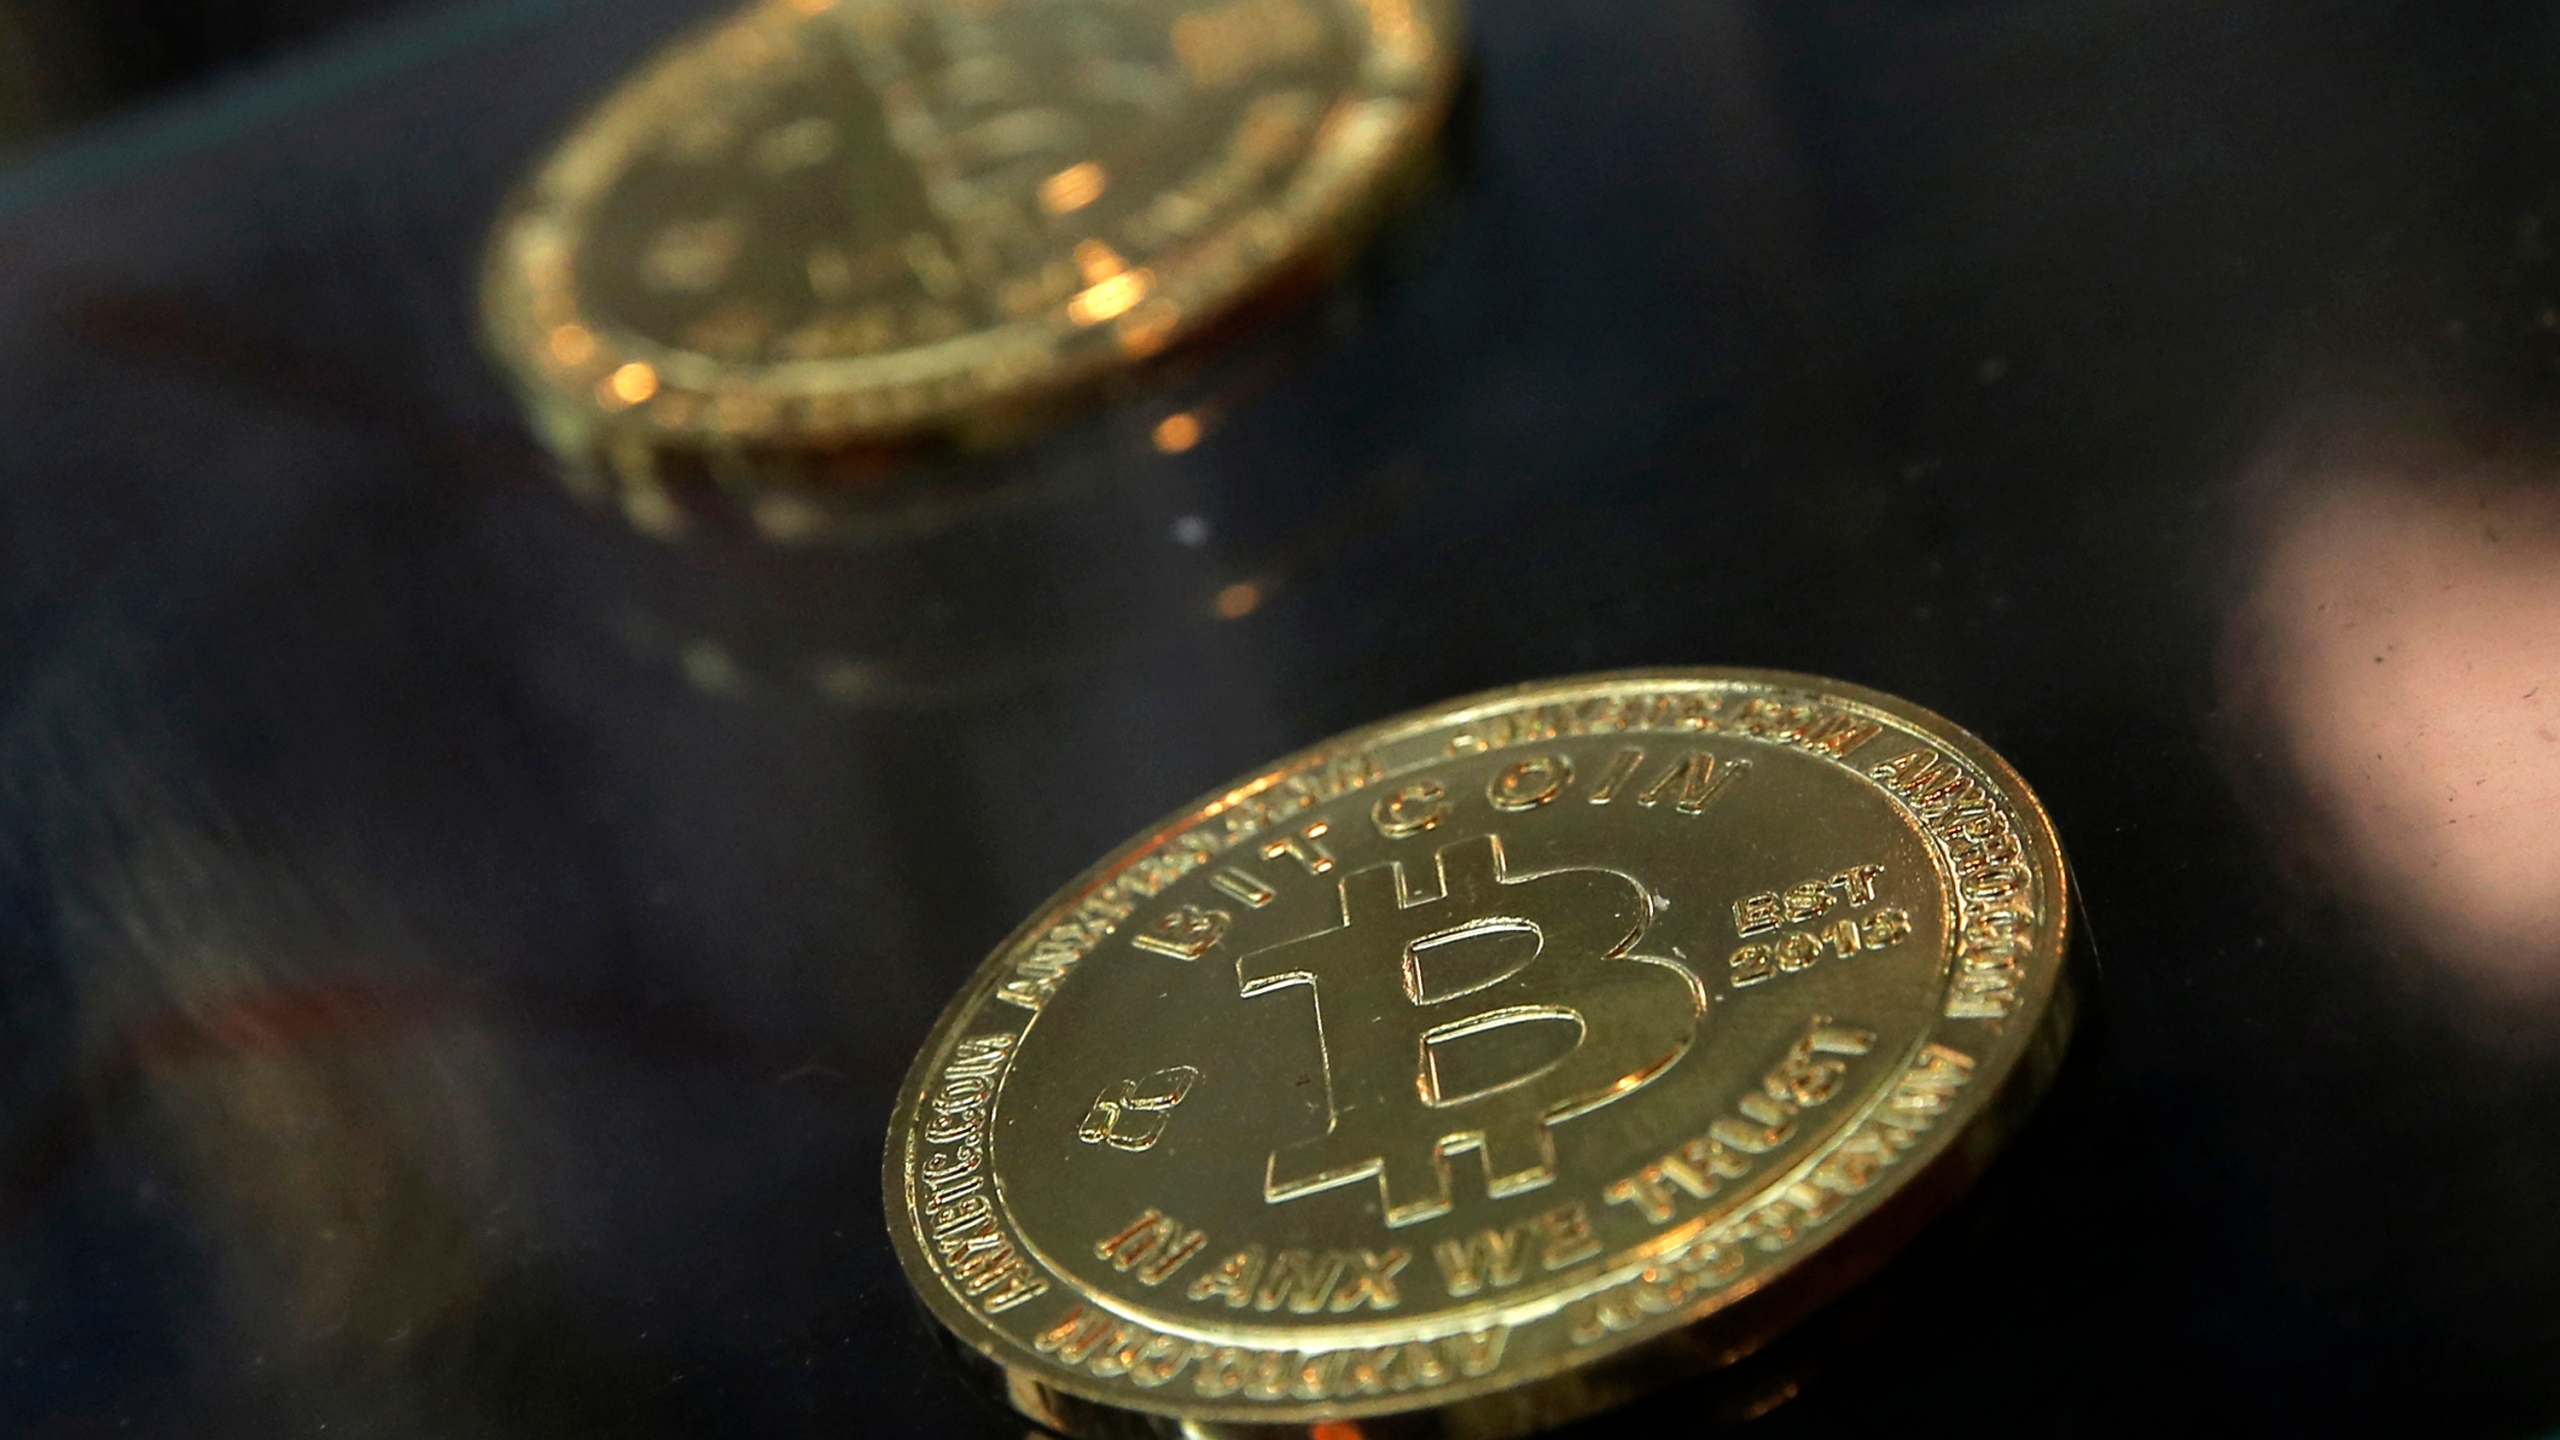 On_the_Money_Cryptocurrencies_and_Taxes_75105-159532.jpg40481822